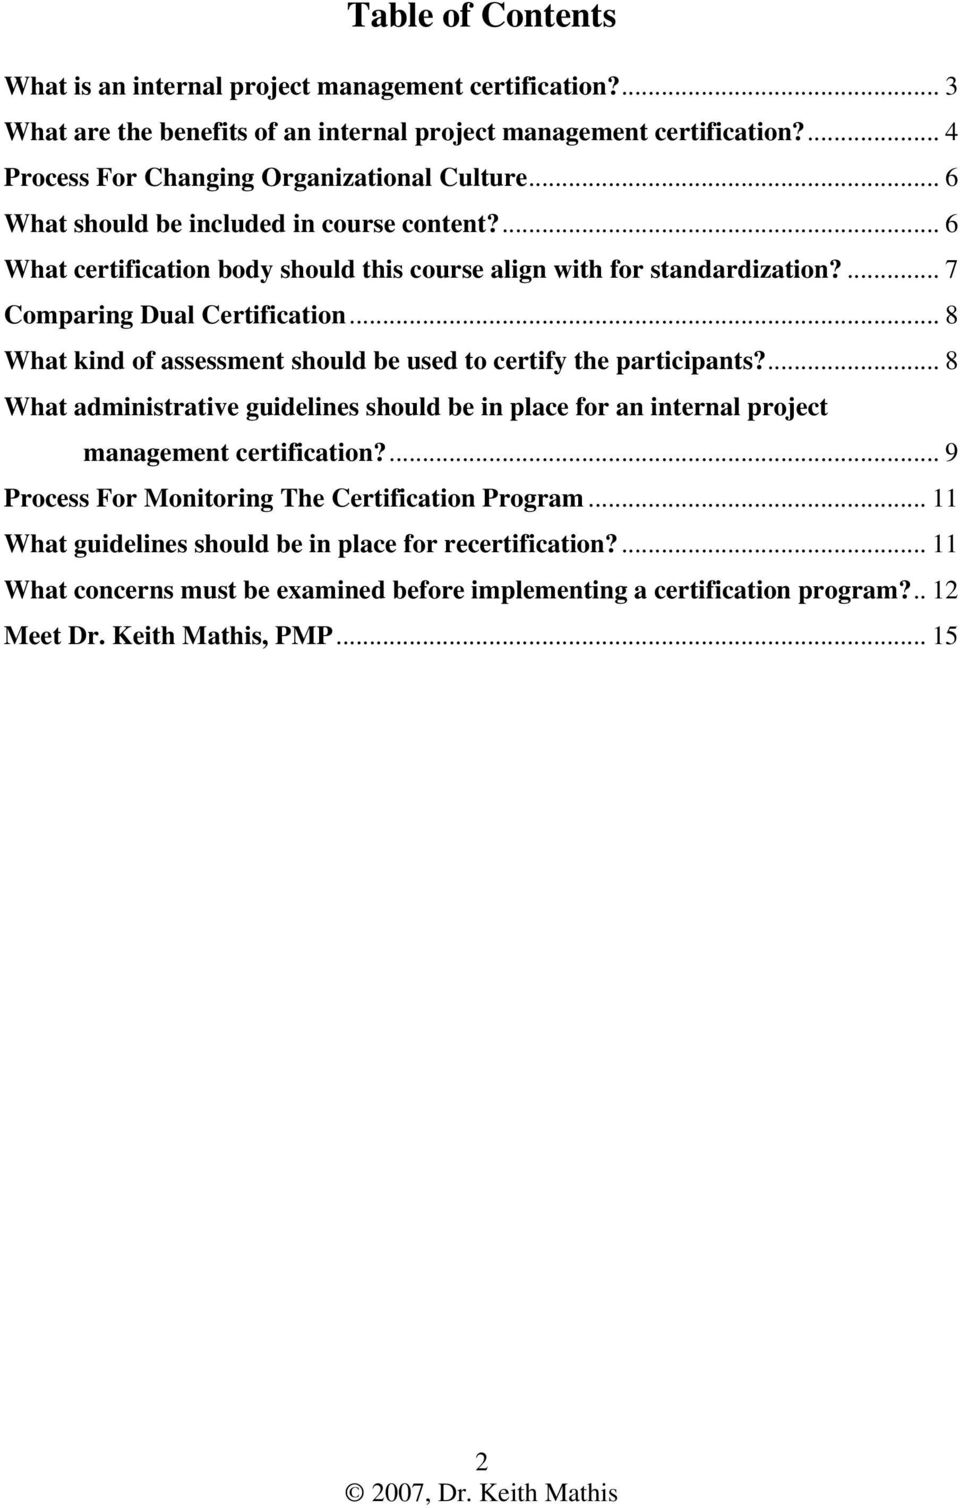 .. 8 What kind of assessment should be used to certify the participants?... 8 What administrative guidelines should be in place for an internal project management certification?